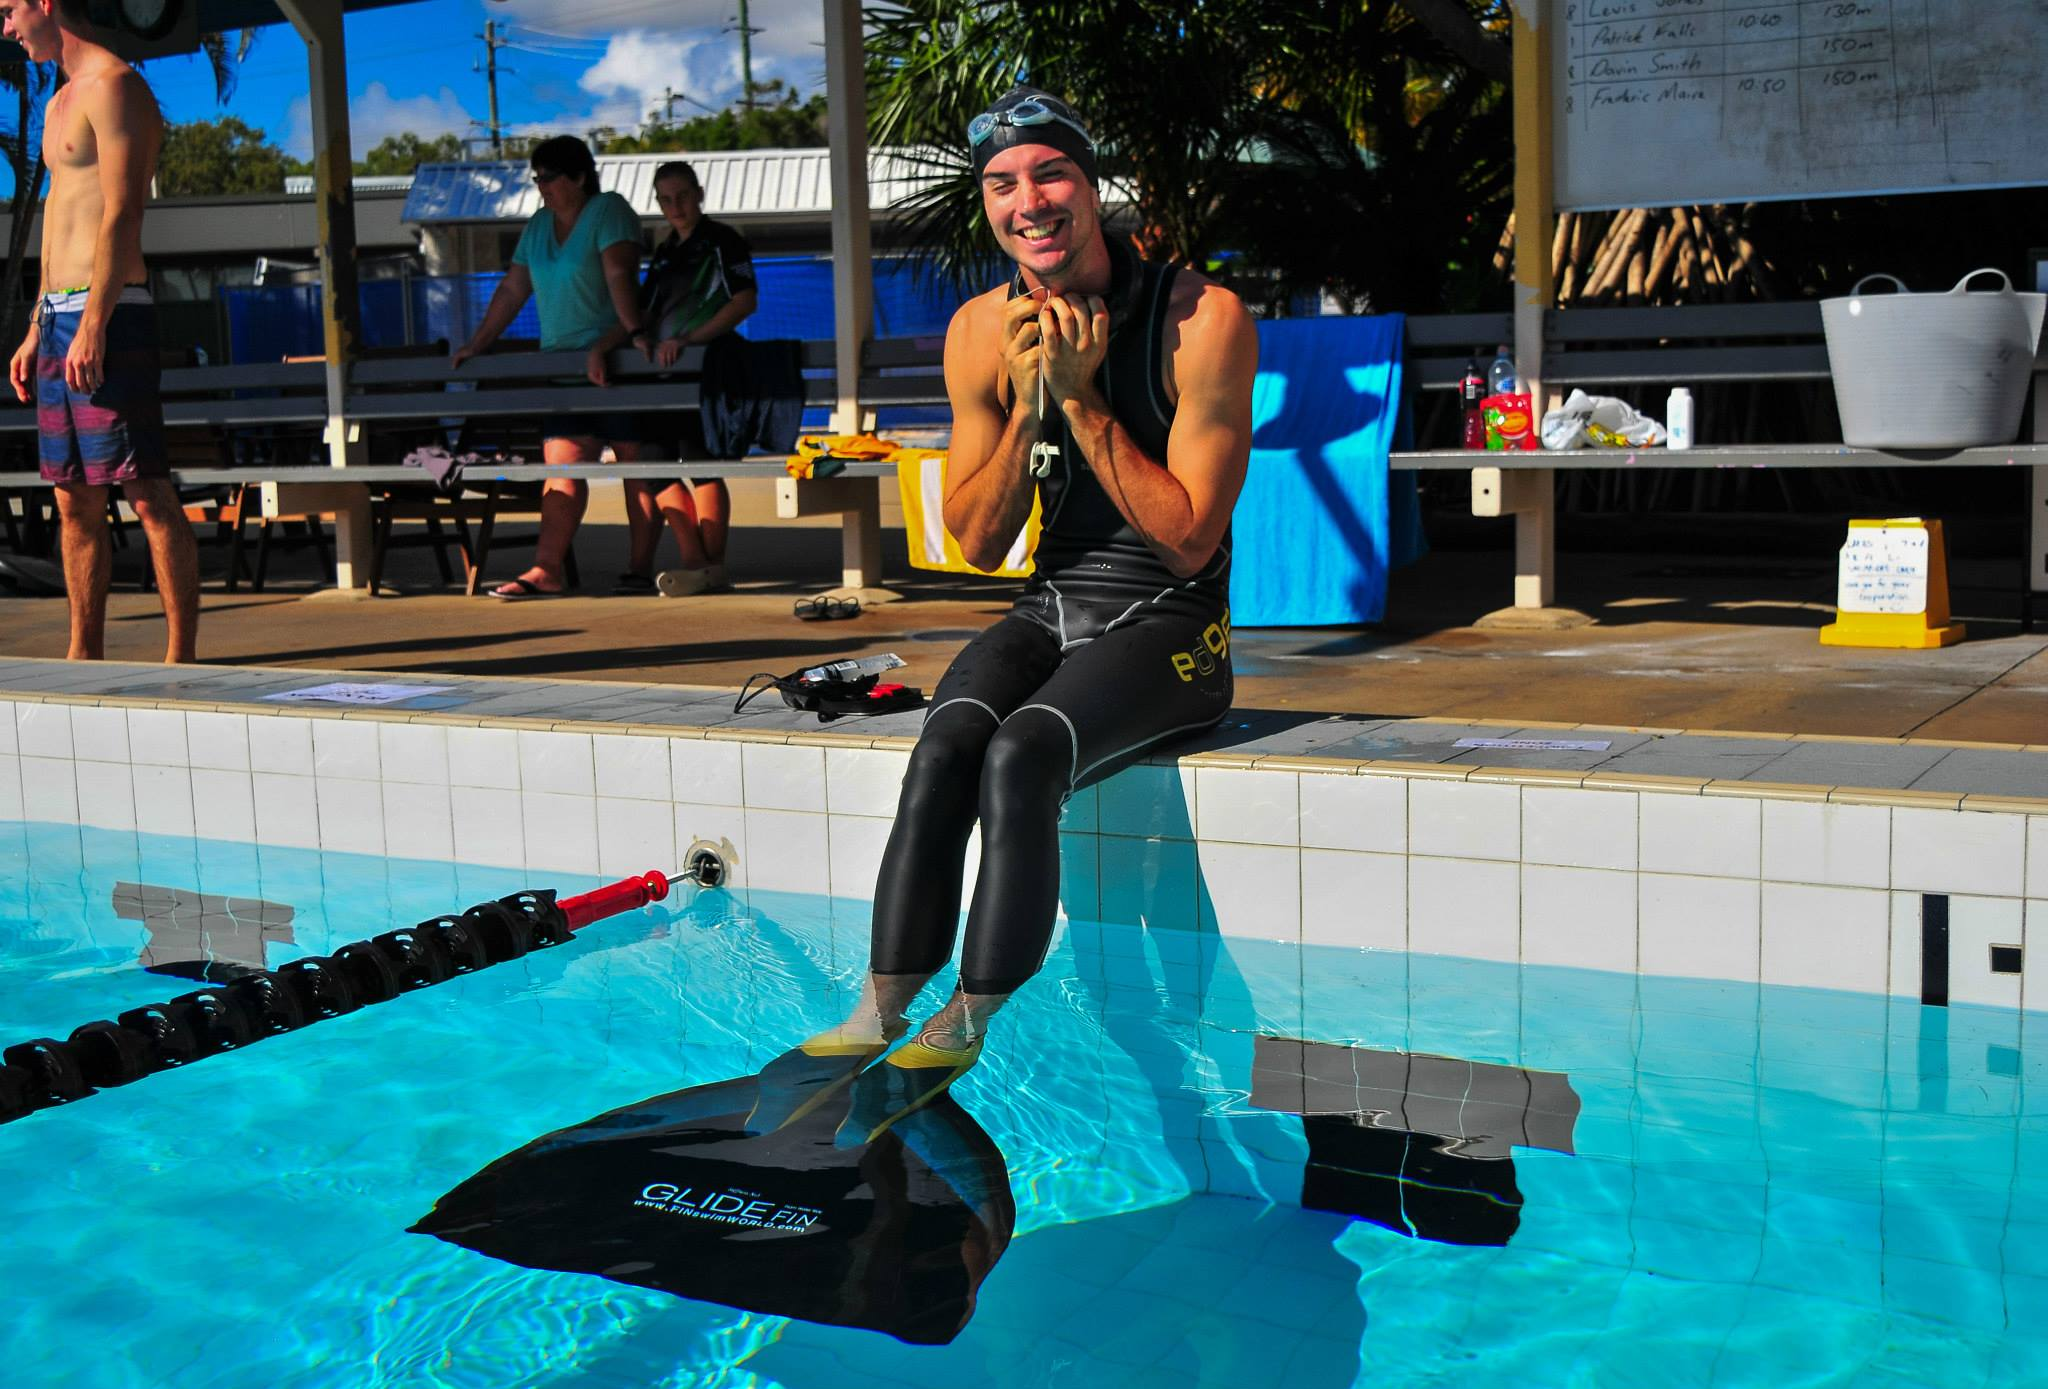 freediving competition preparing